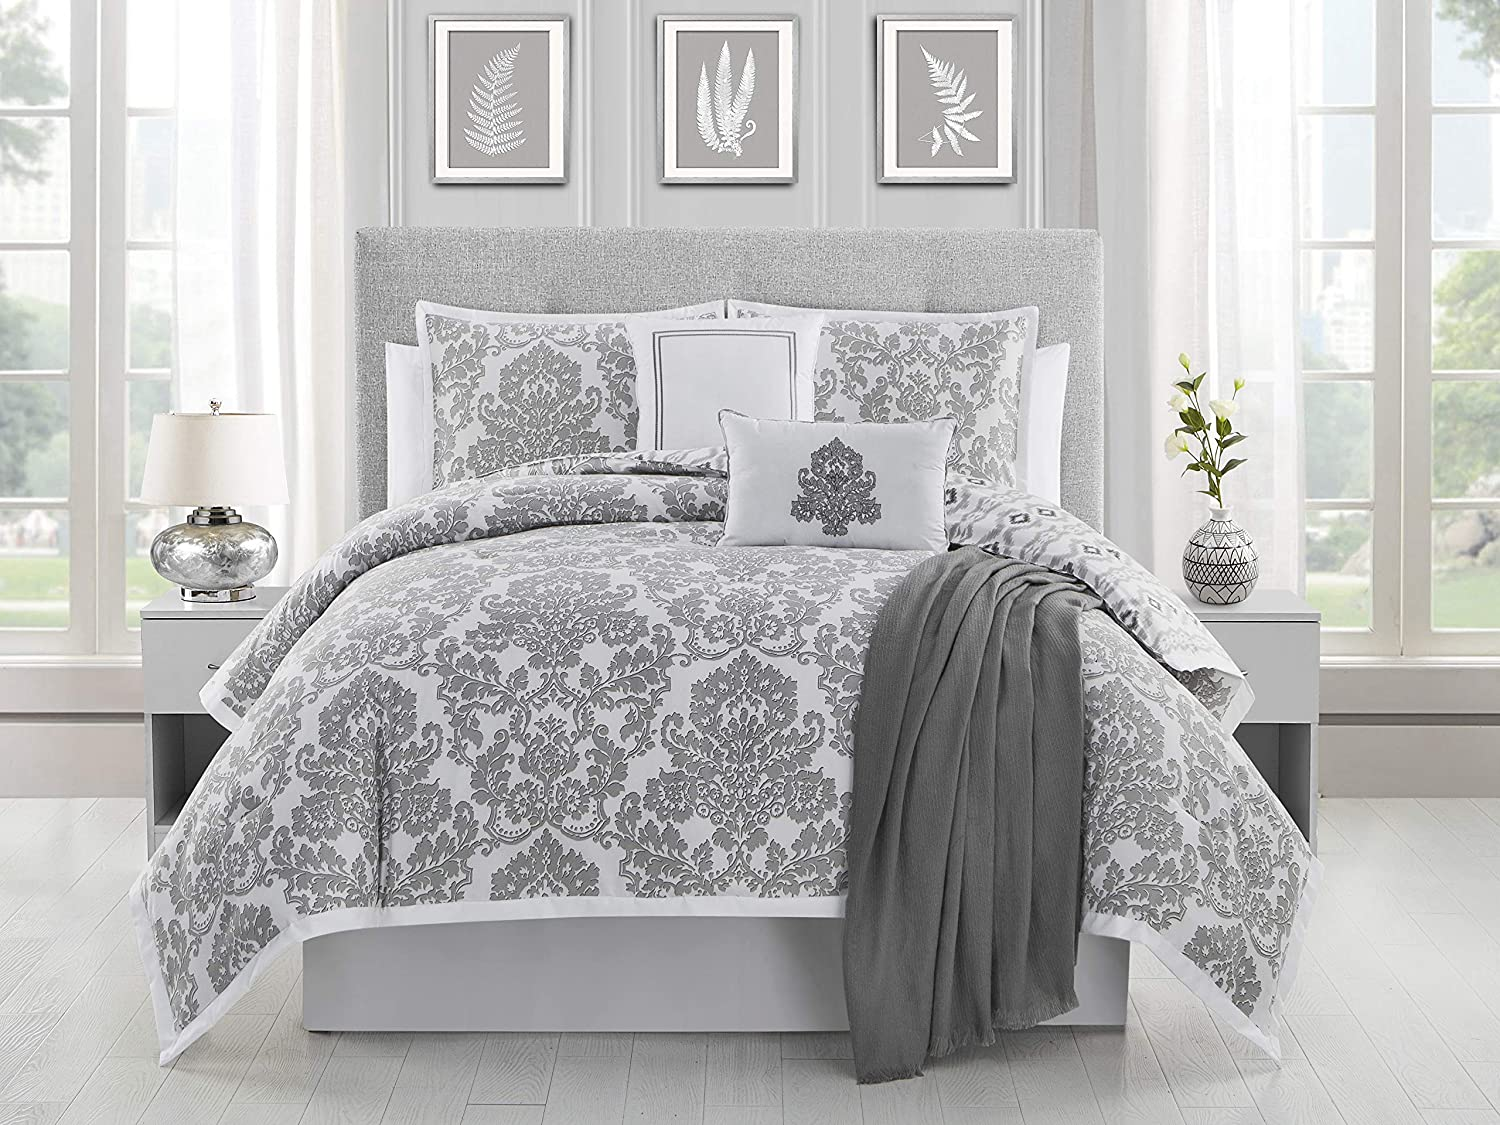 ELLEN TRACY Adalisa Bedding Set Queen Grey